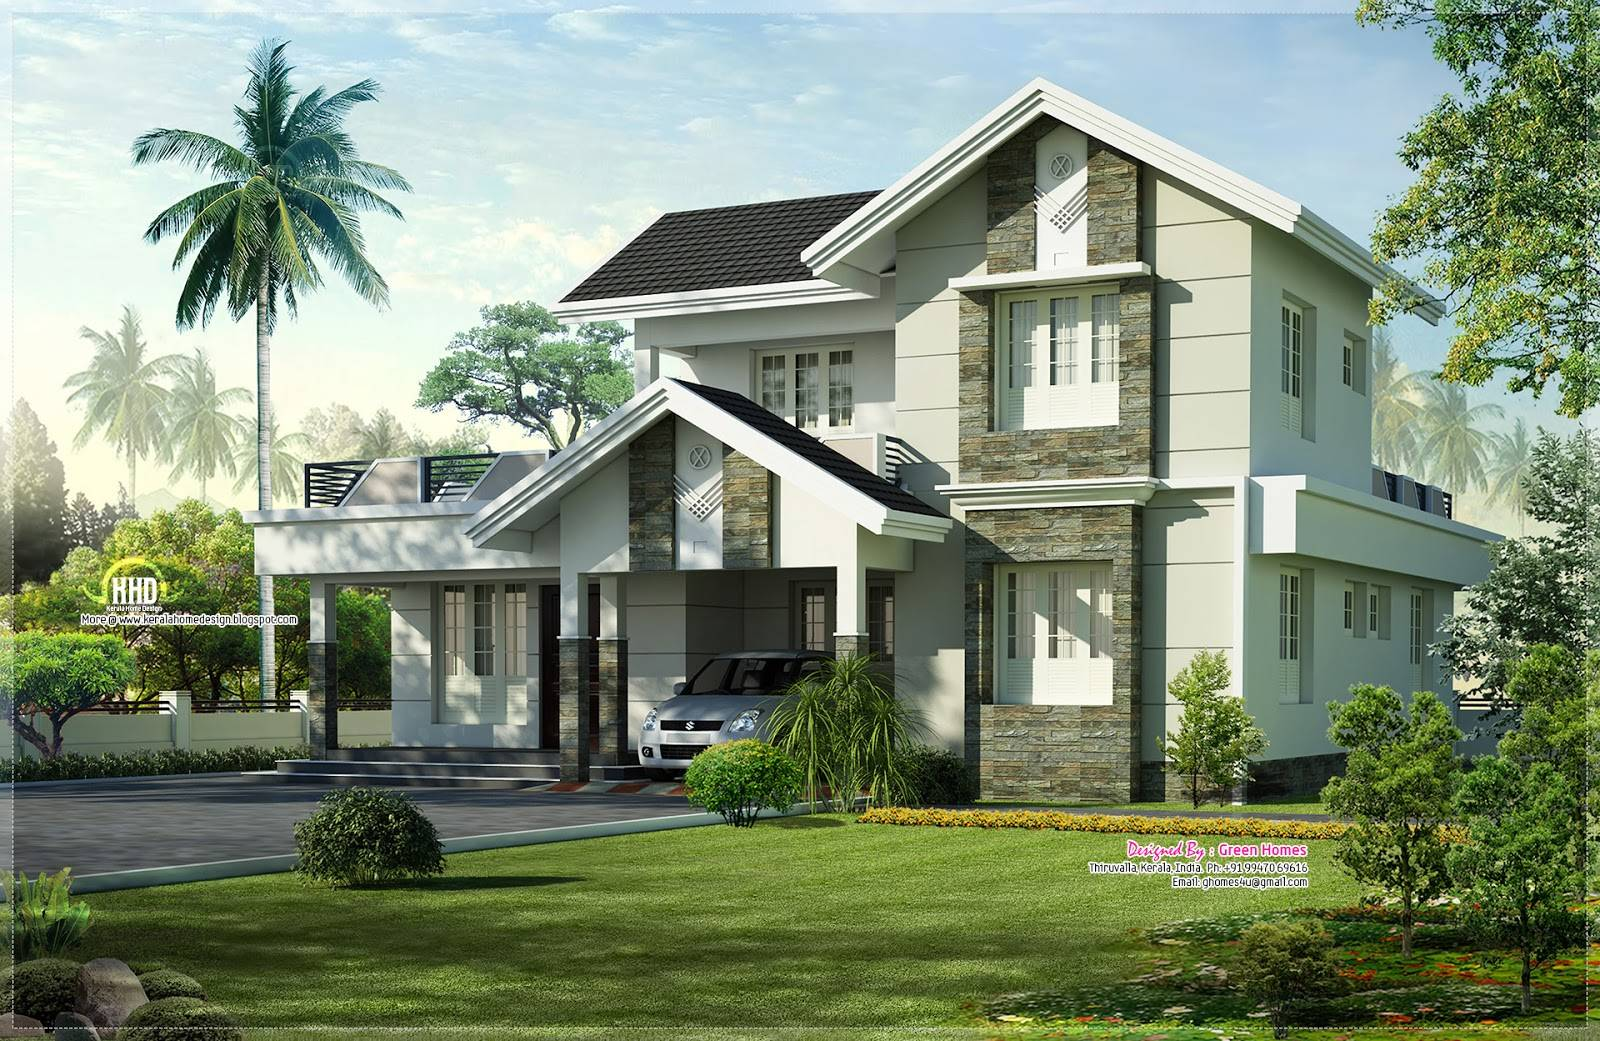 Exterior design for homes